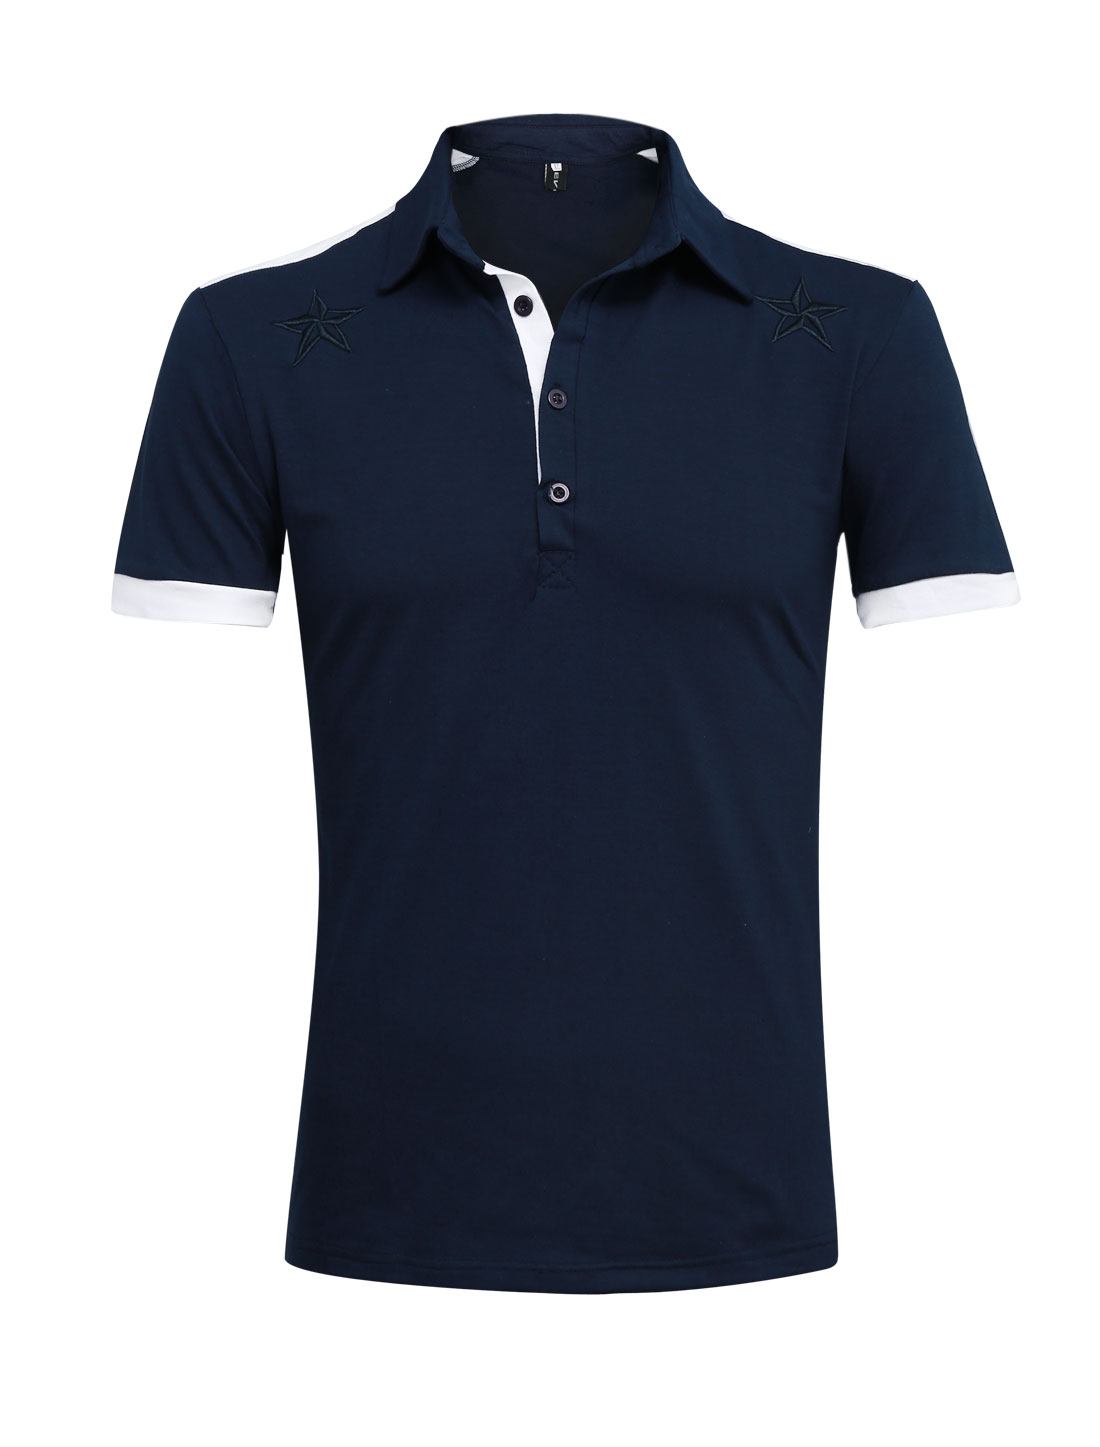 Men Point Collar Star Embroidery Summer Polo Shirt Navy Blue M